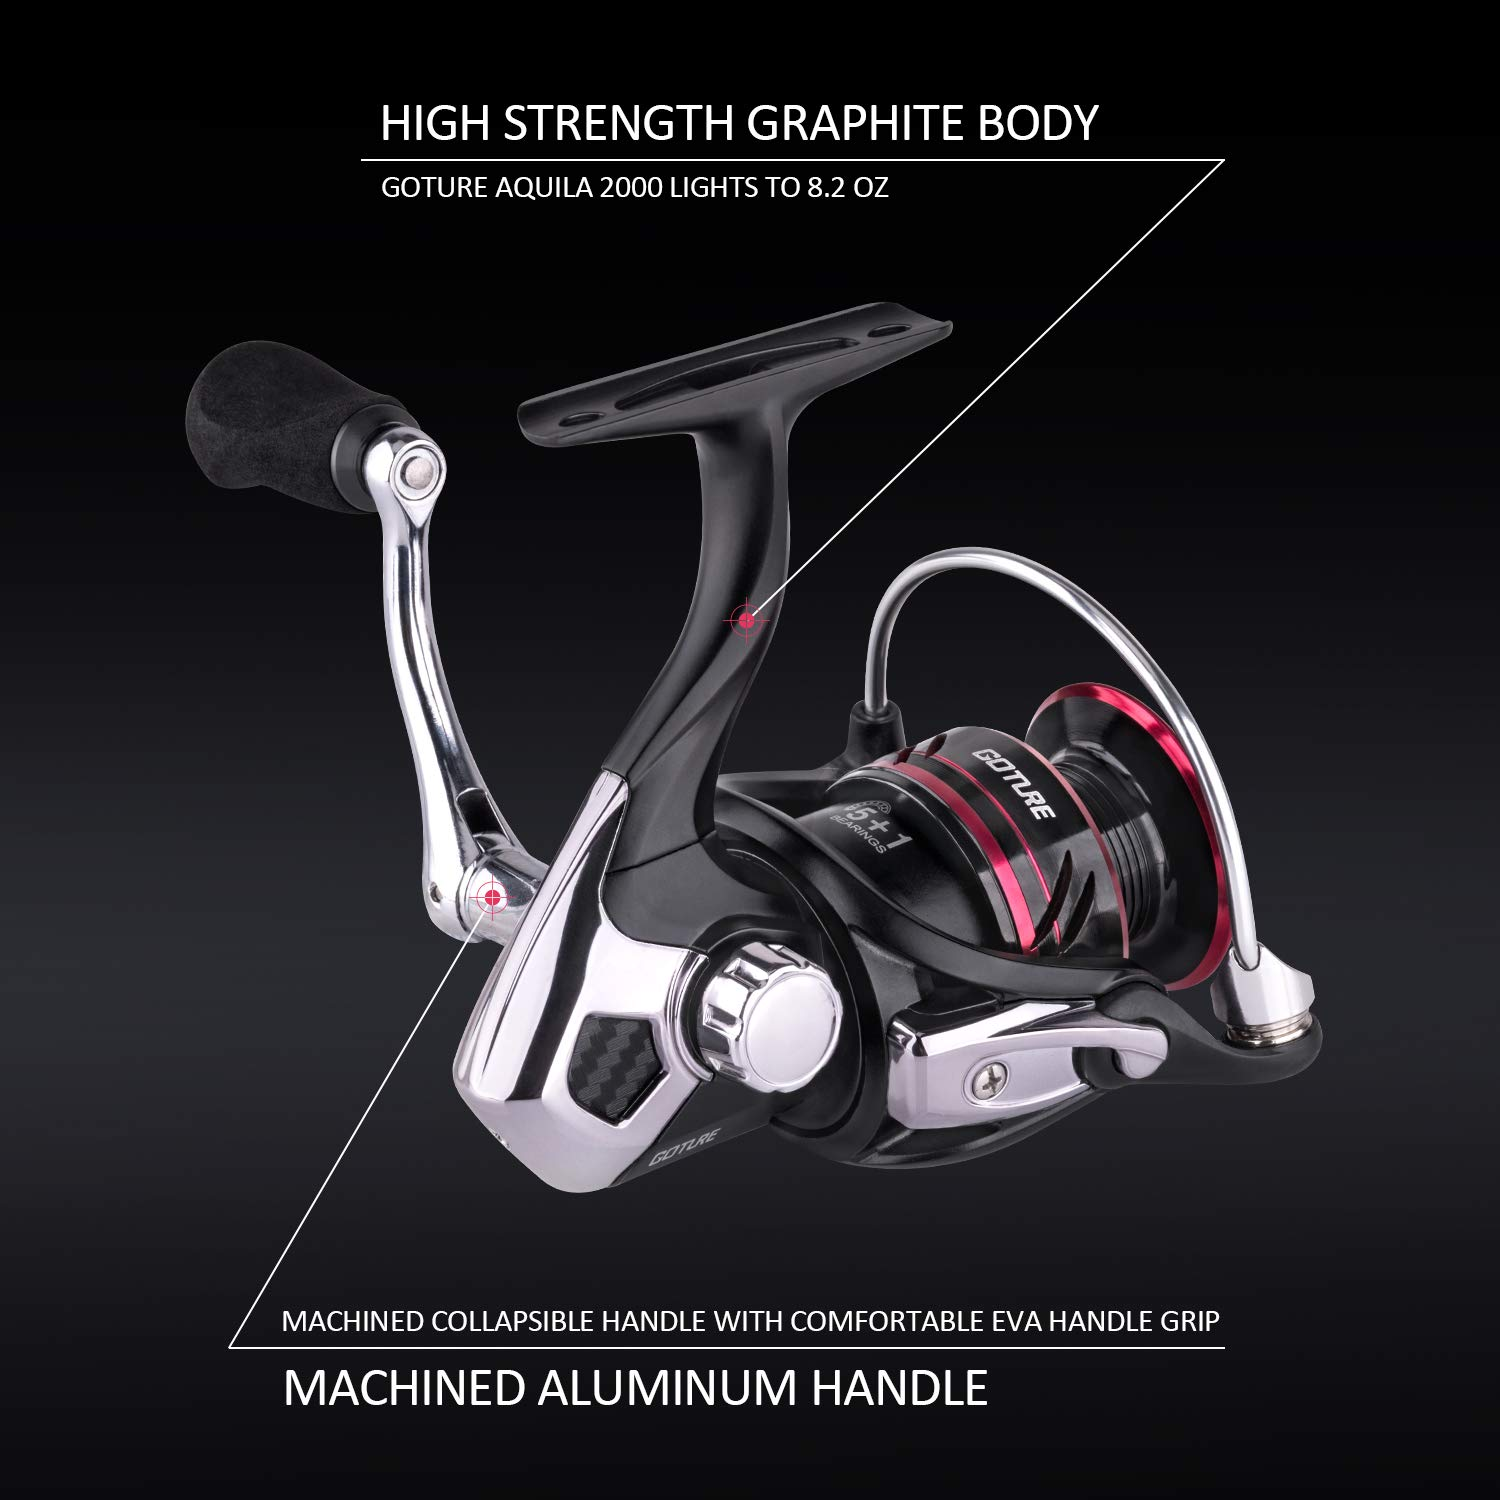 Goture Saltwater & Freshwater Fishing Reel - Aquila Aluminum Offshore Surf Spinning Ice Fishing Reel - Max Drag Up to 11 Lb (500 Series)